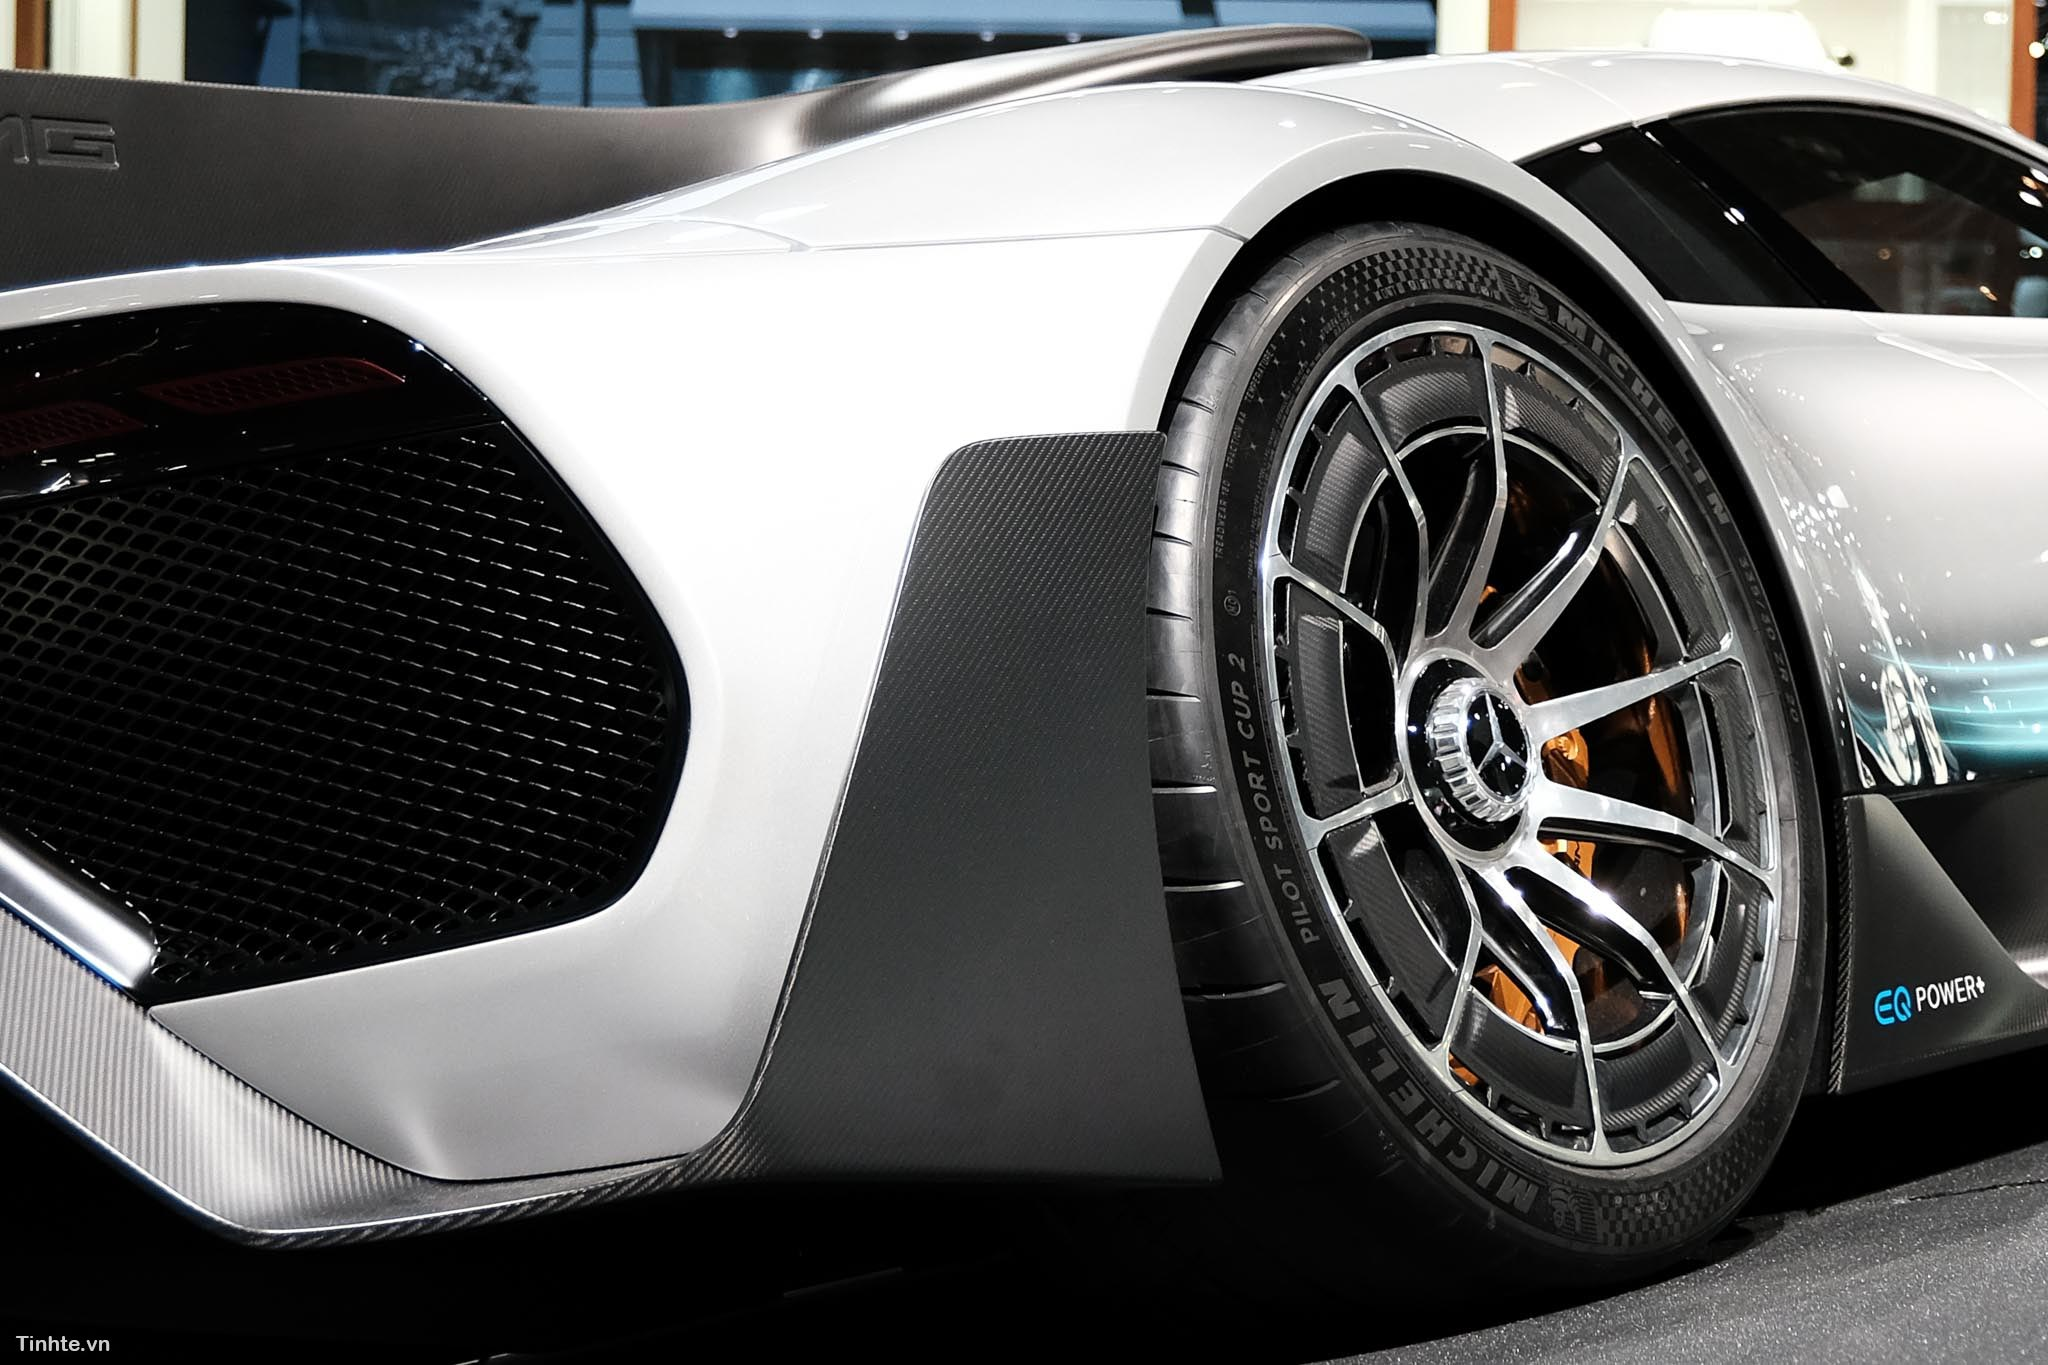 Mercedes-AMG_Project_ONE_xe_tinhte_4.jpg